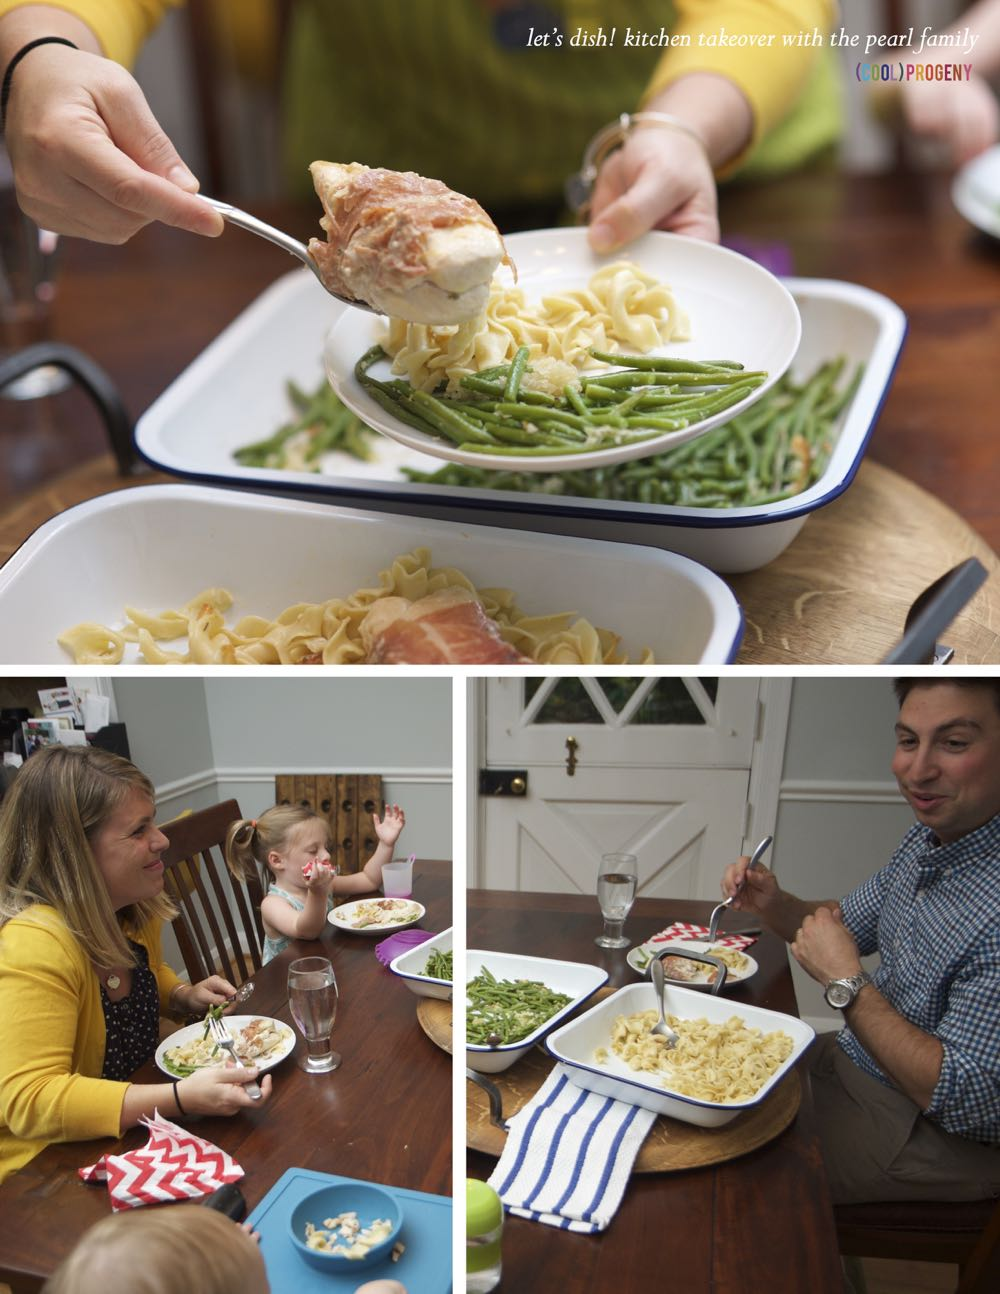 Let's Dish! Kitchen Takeover with the Pearl Family - (cool) progeny